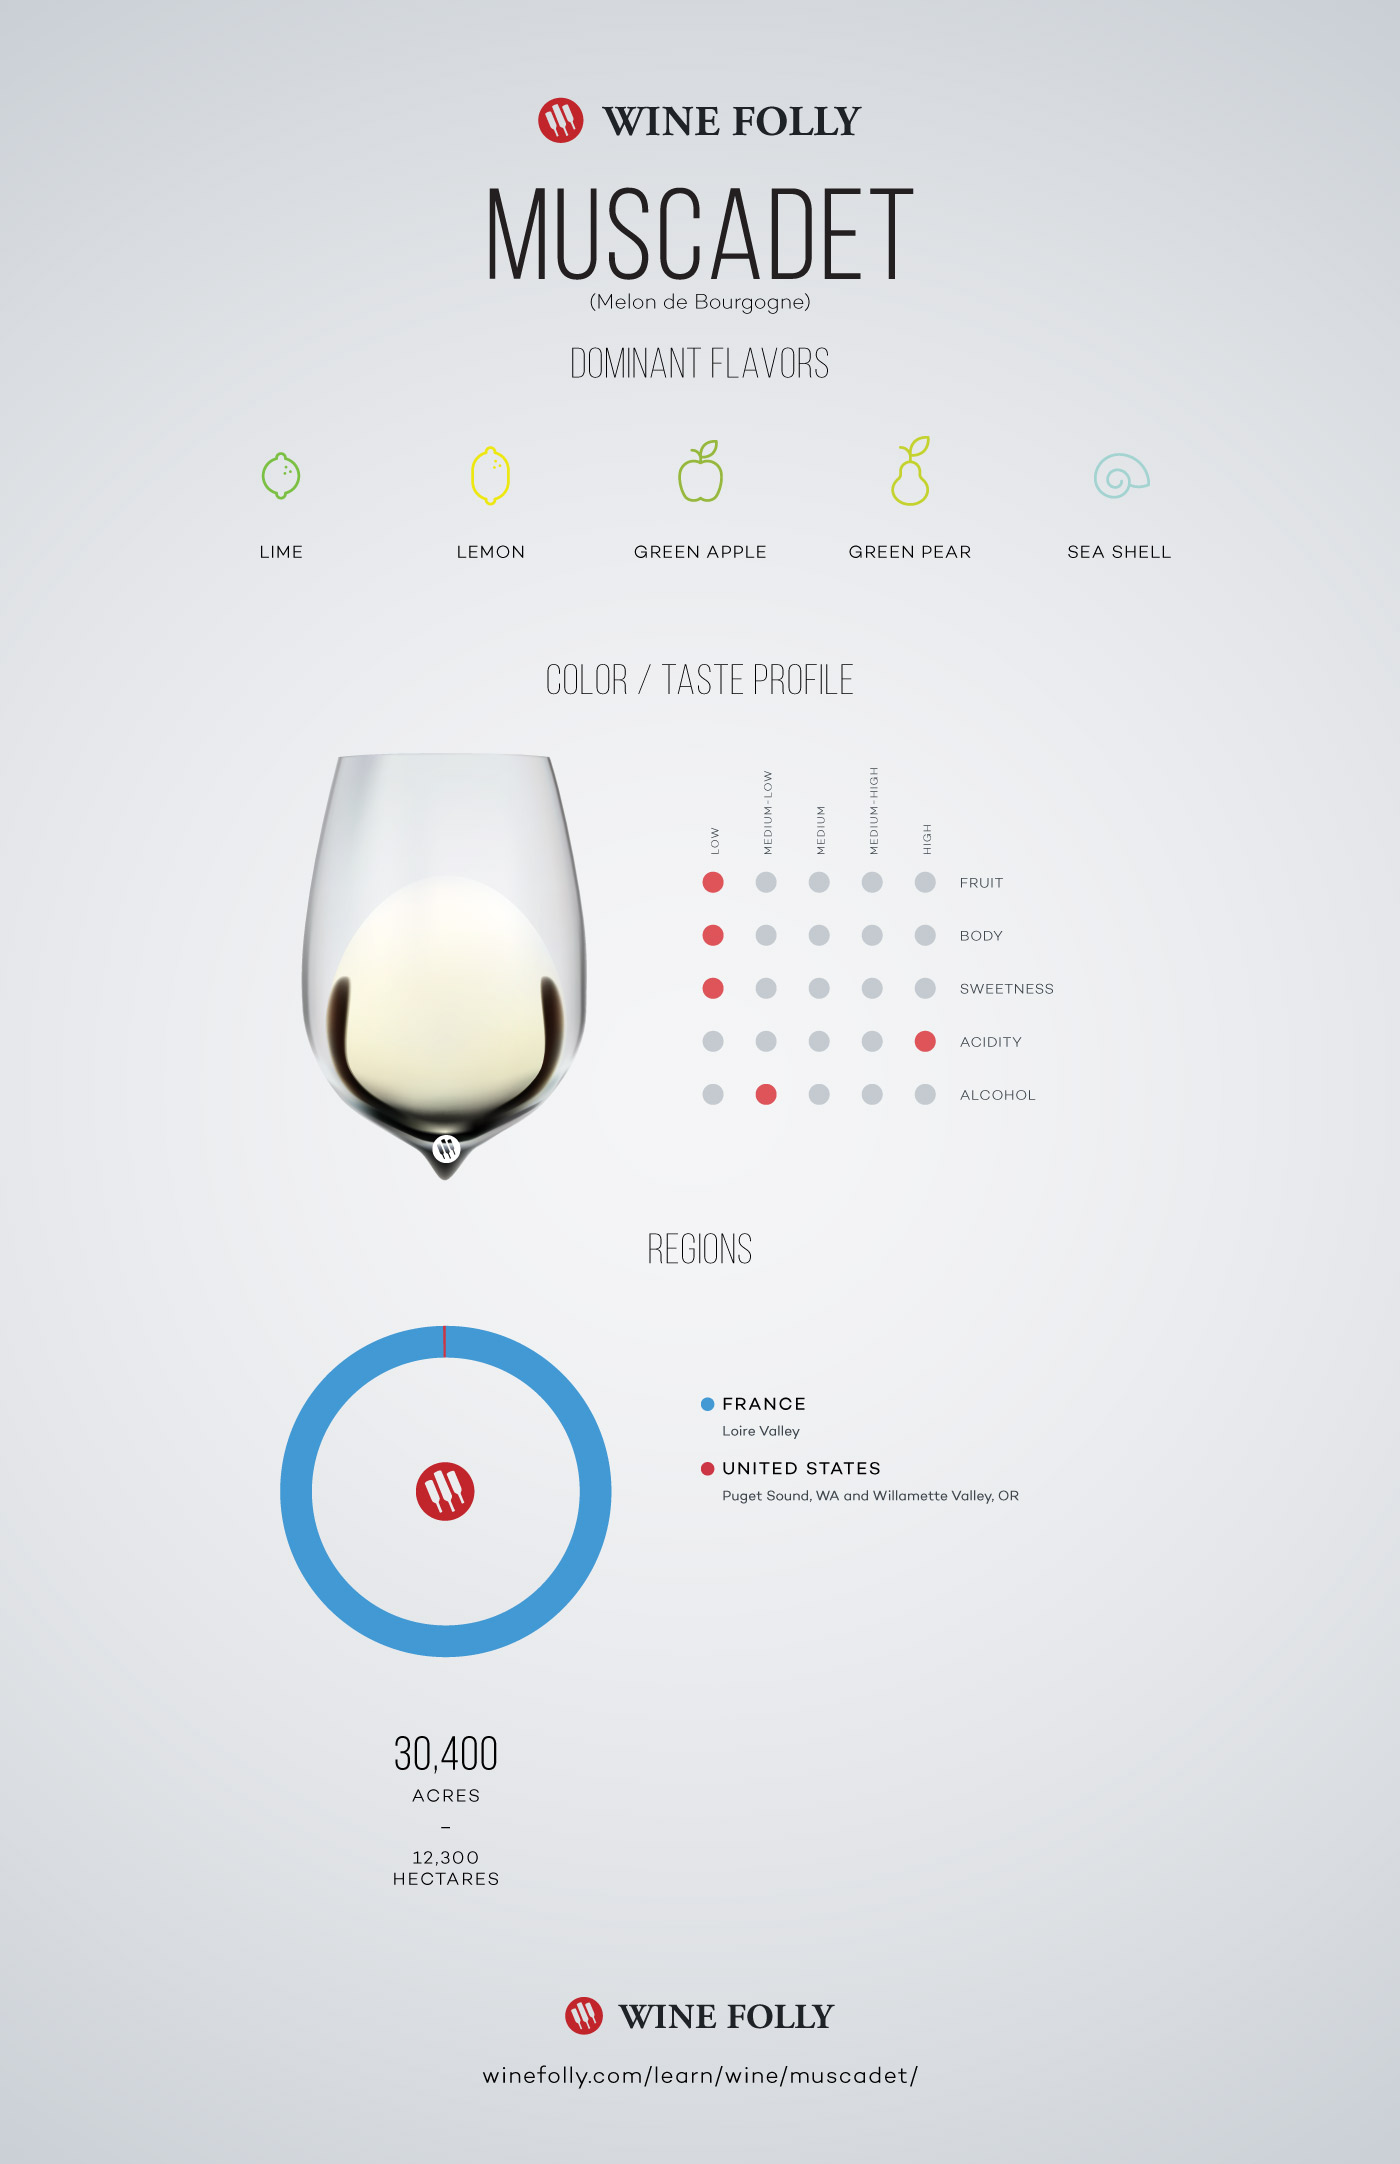 Muscadet Wine Taste Profile, Flavors and Regional distribution by Wine Folly